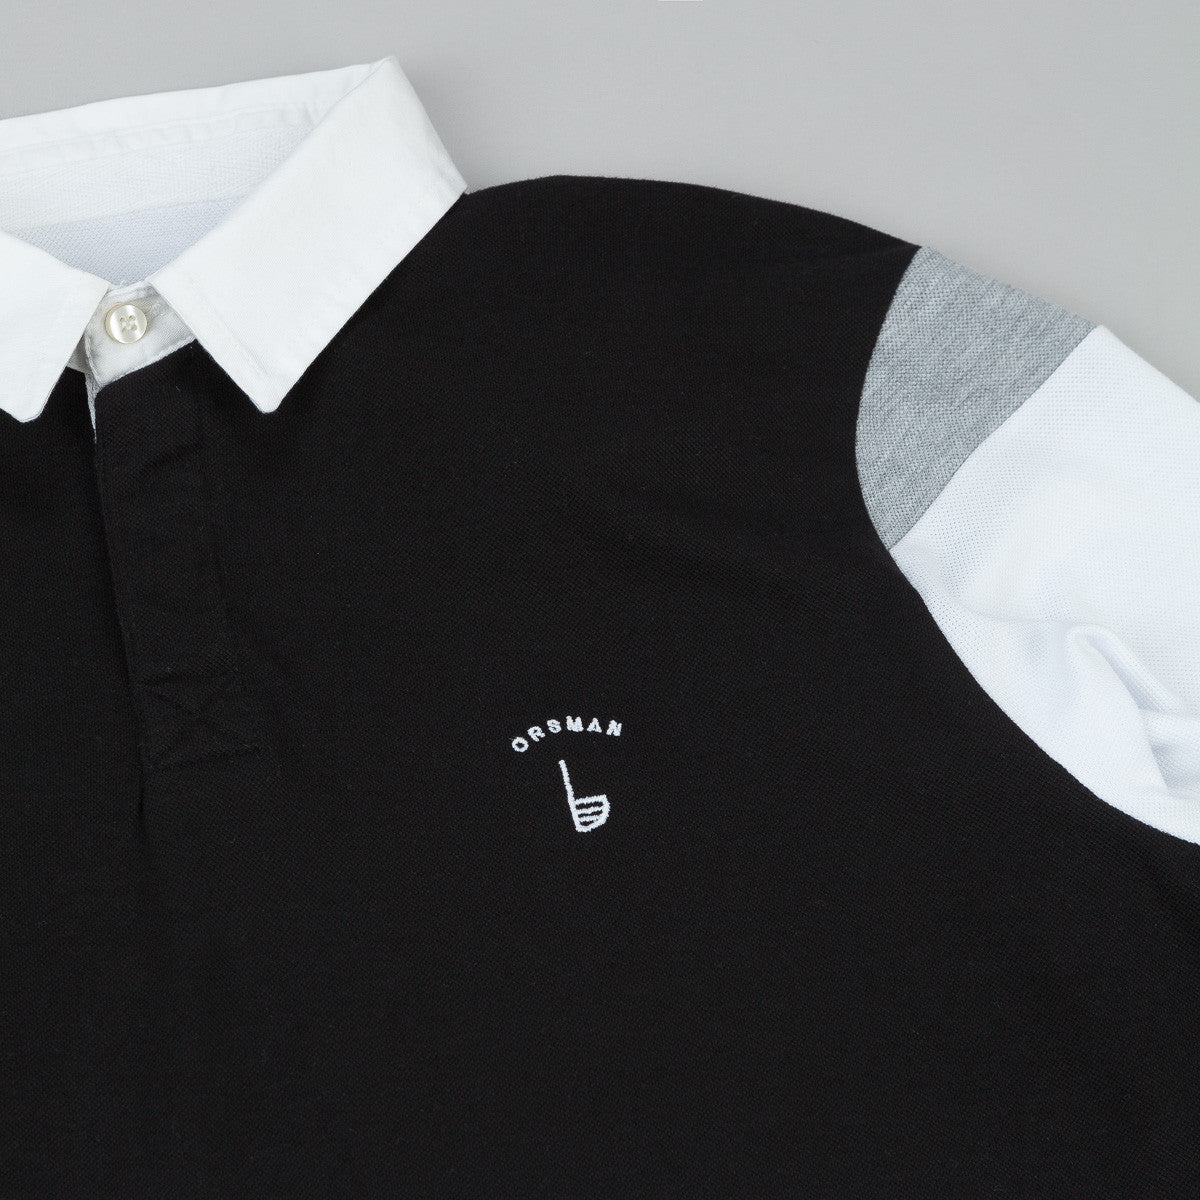 Orsman Long Sleeve Polo Shirt - Black / White / Grey